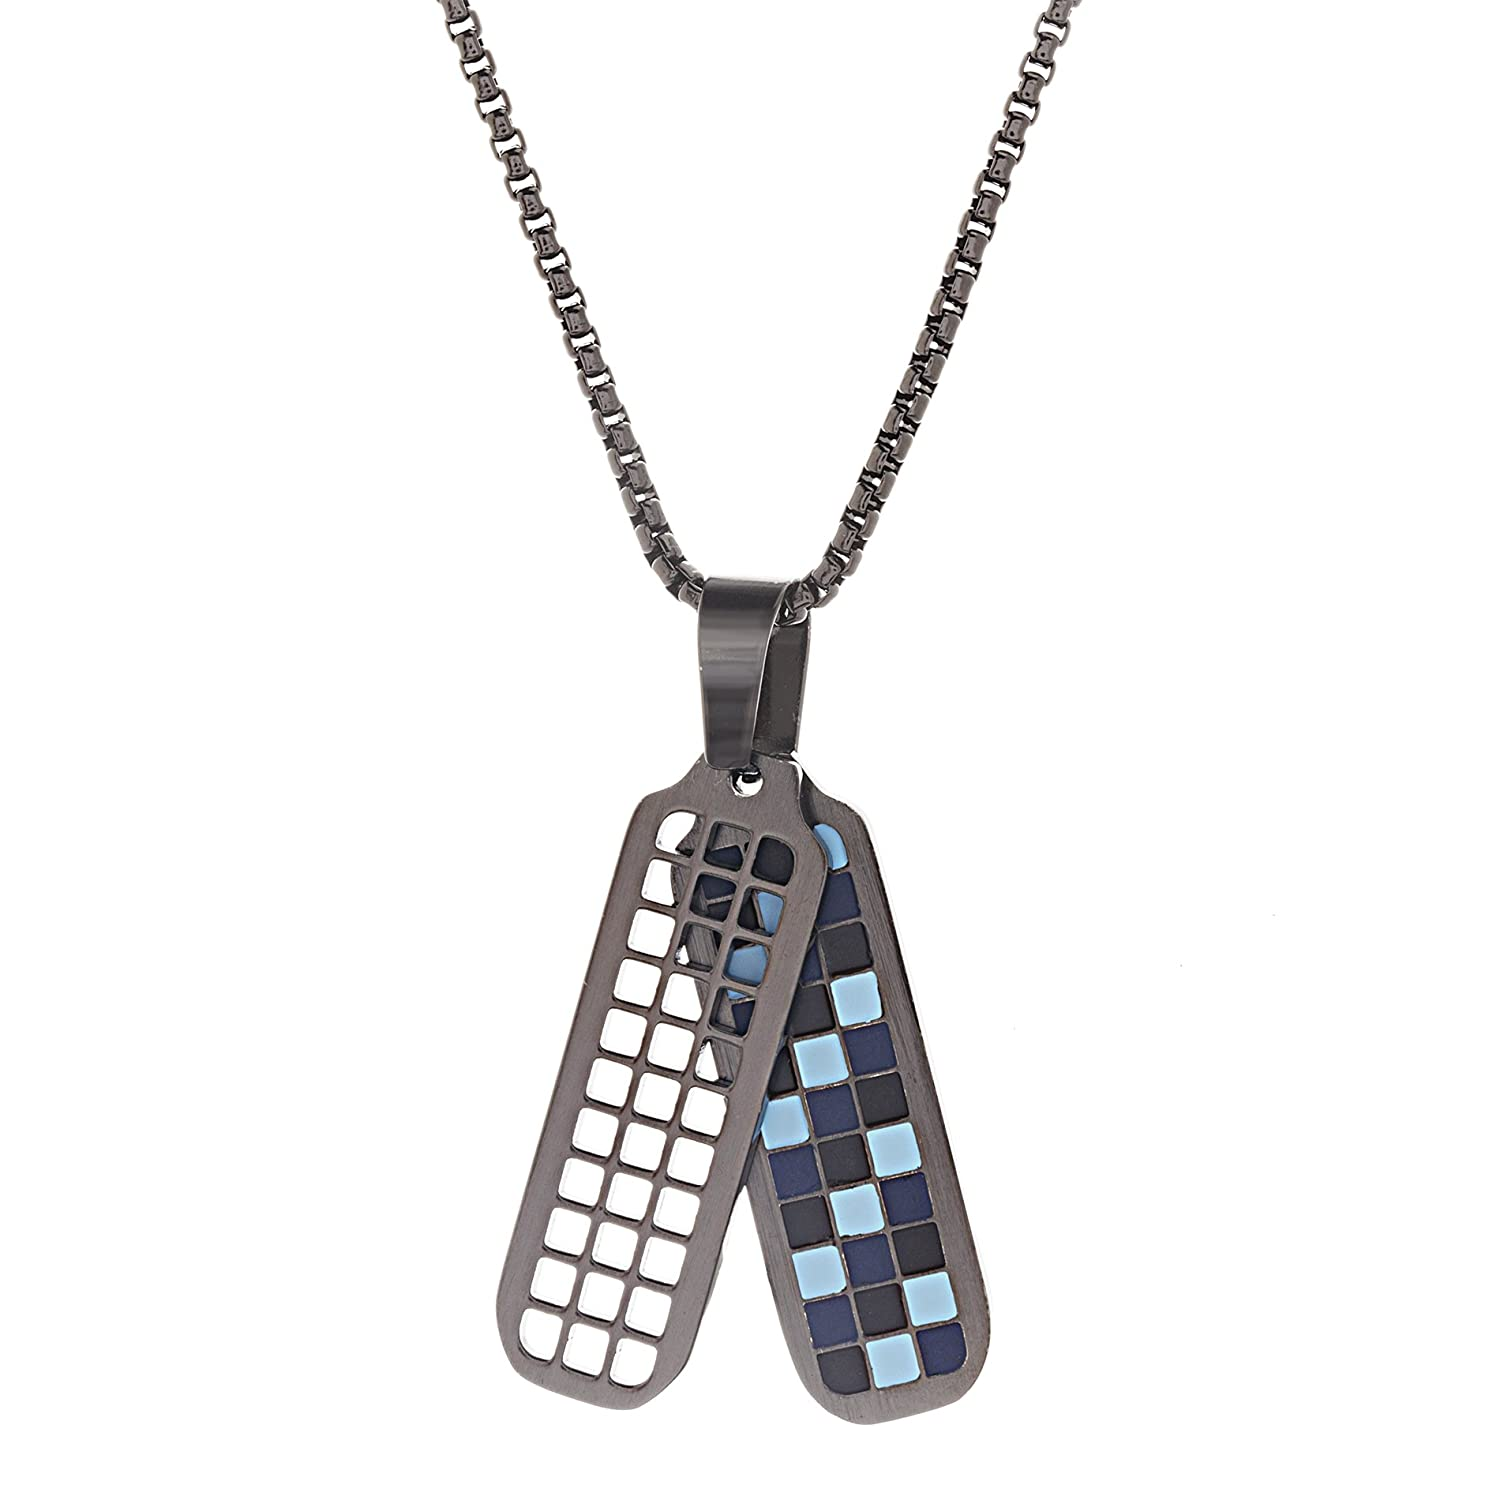 Ben Sherman Men's Black/Light Blue Checkerboard Dog Tag Necklace with Stainless Steel Black IP Roll Chain, 26 BSNS541030B-EM1